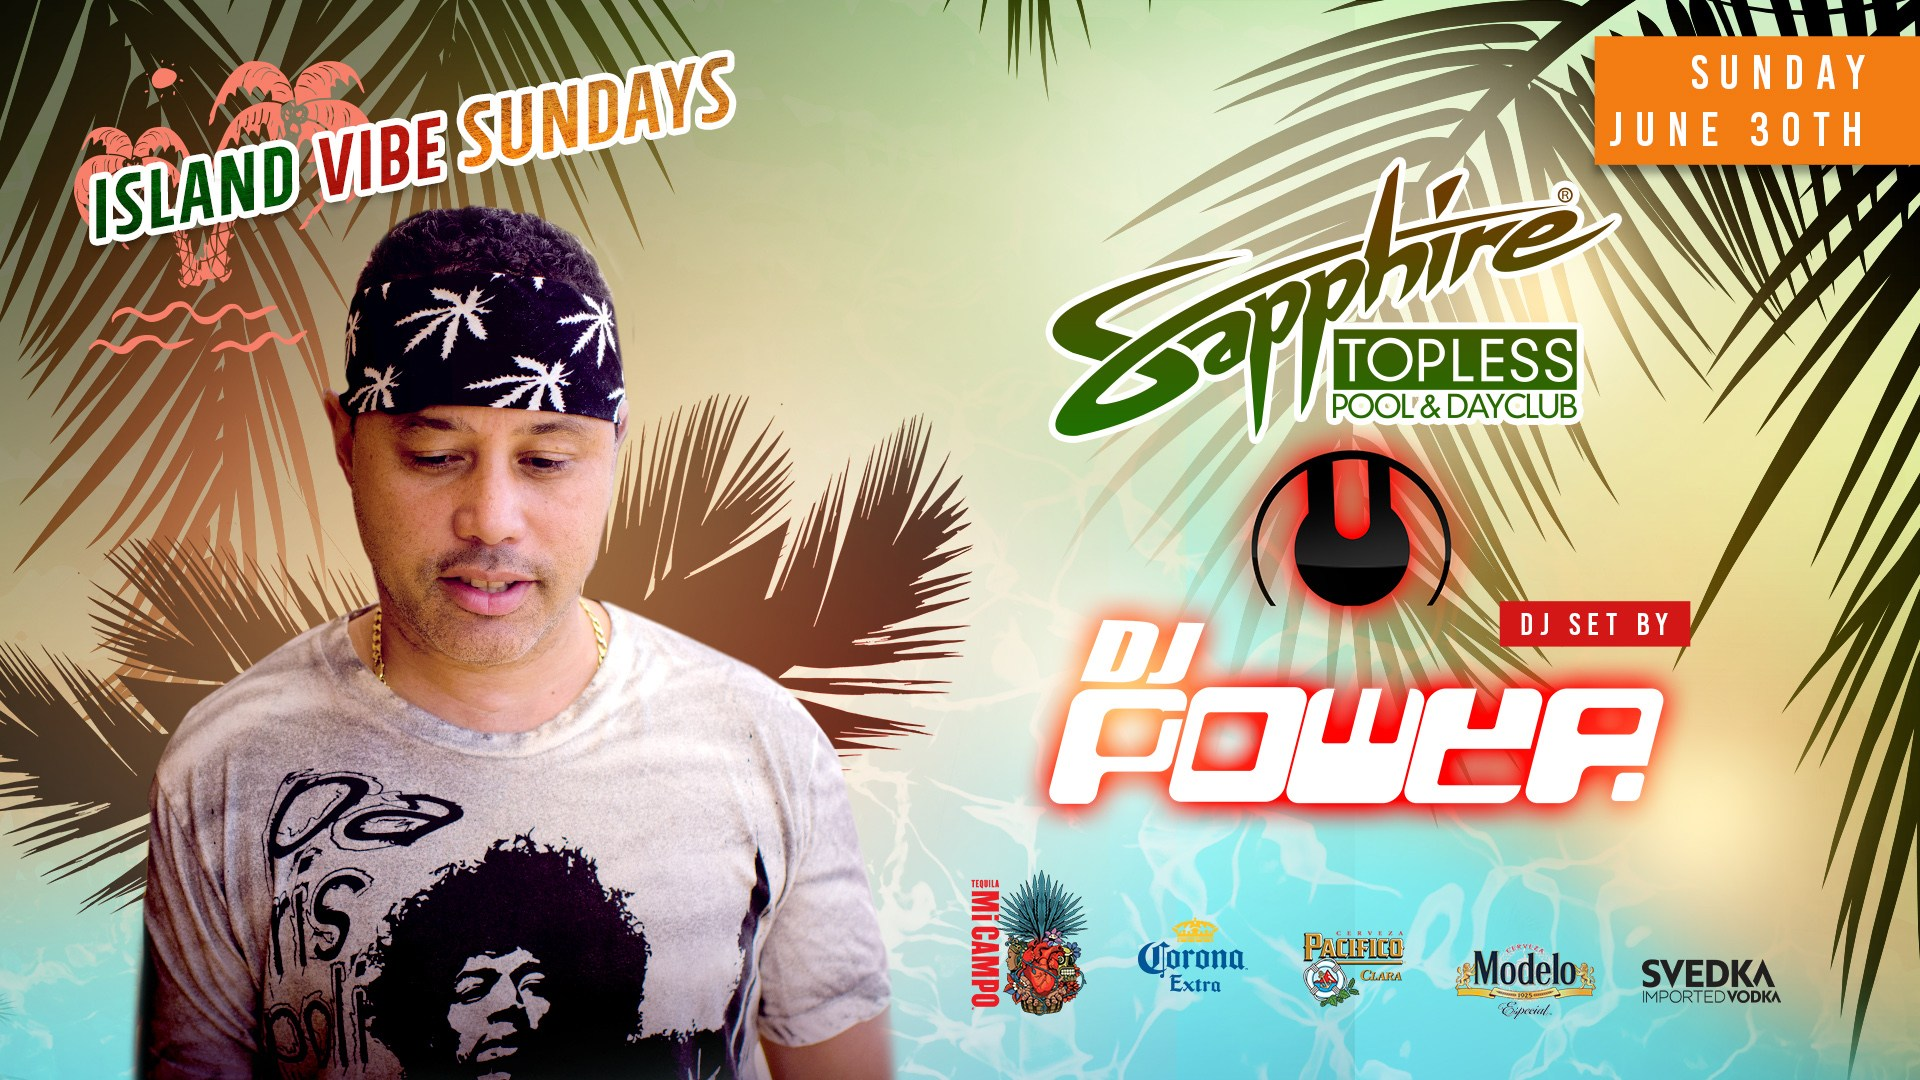 DJ Power Performs LIVE at Sapphire Topless Pool and